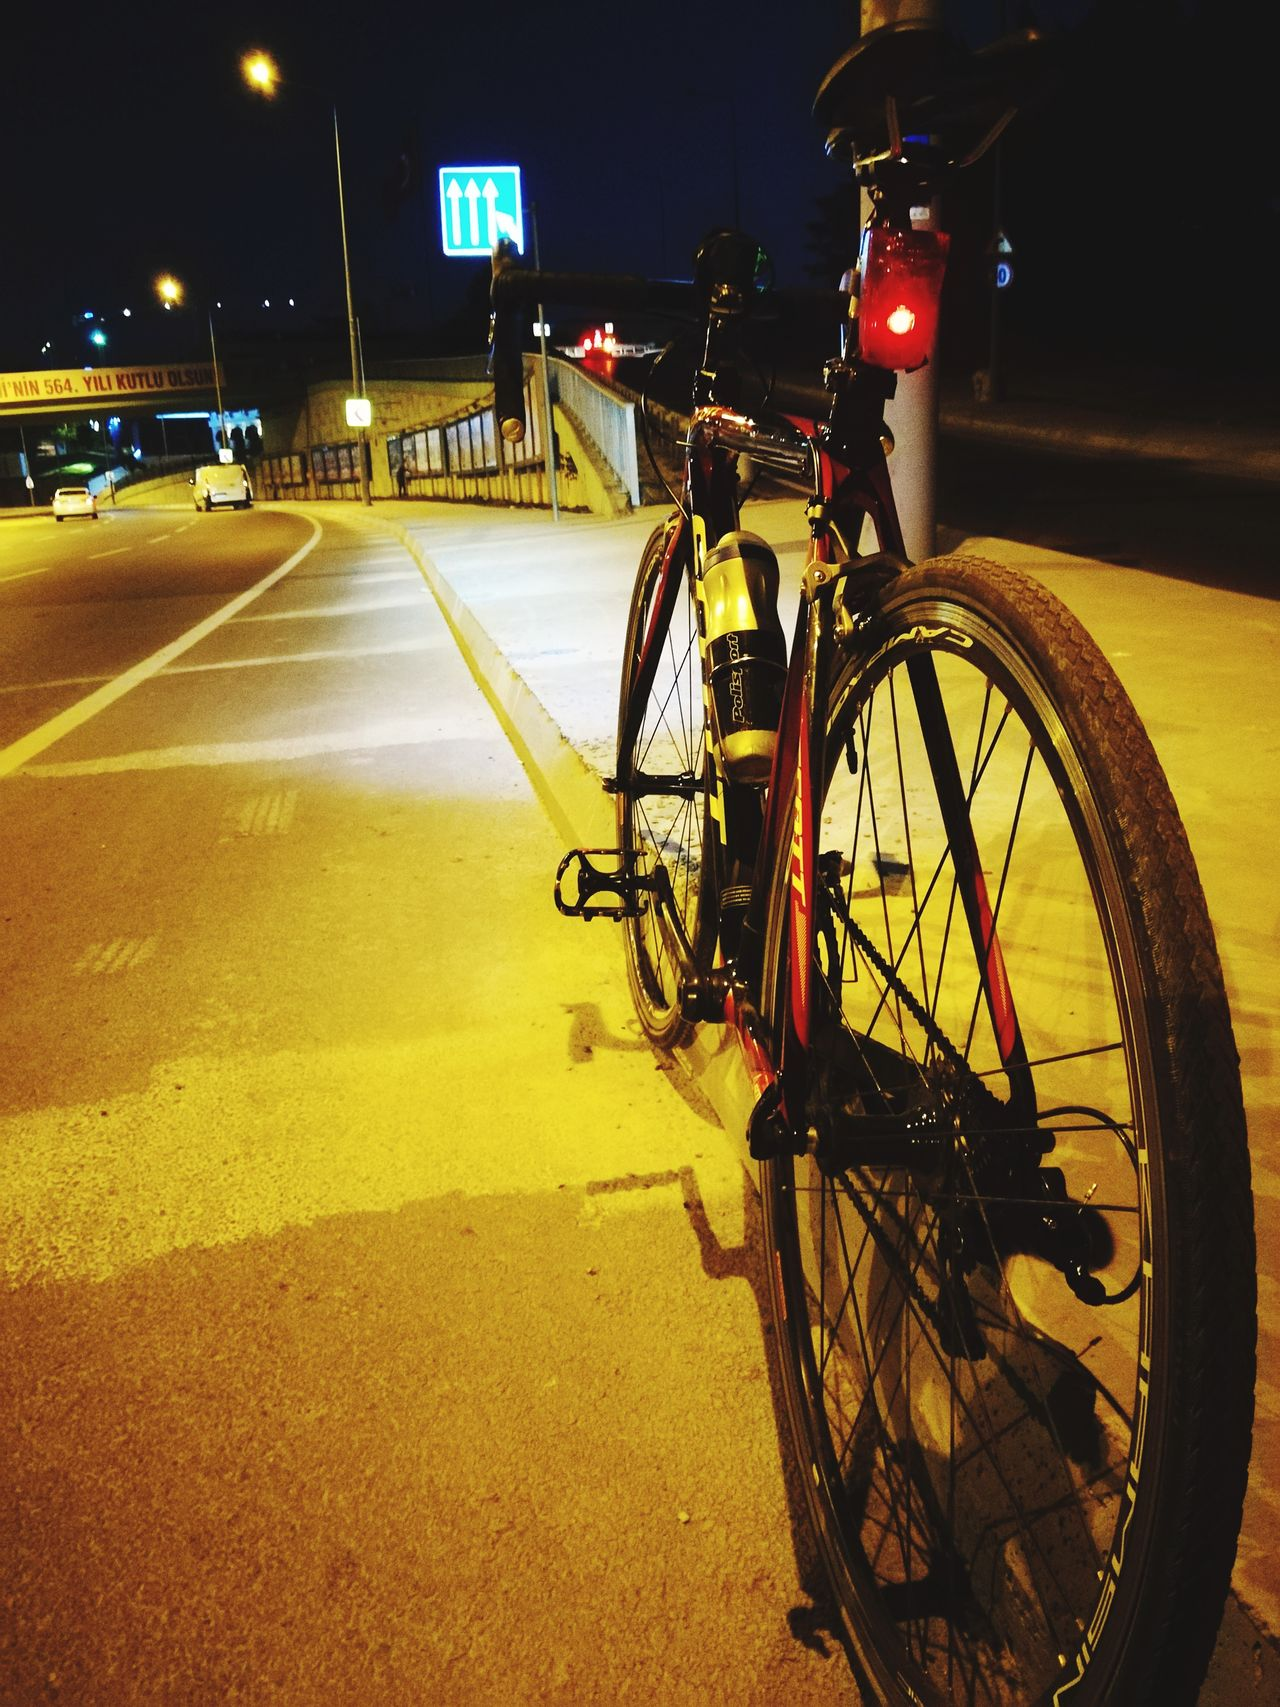 Bicycle Night Illuminated Outdoors City No People Sky